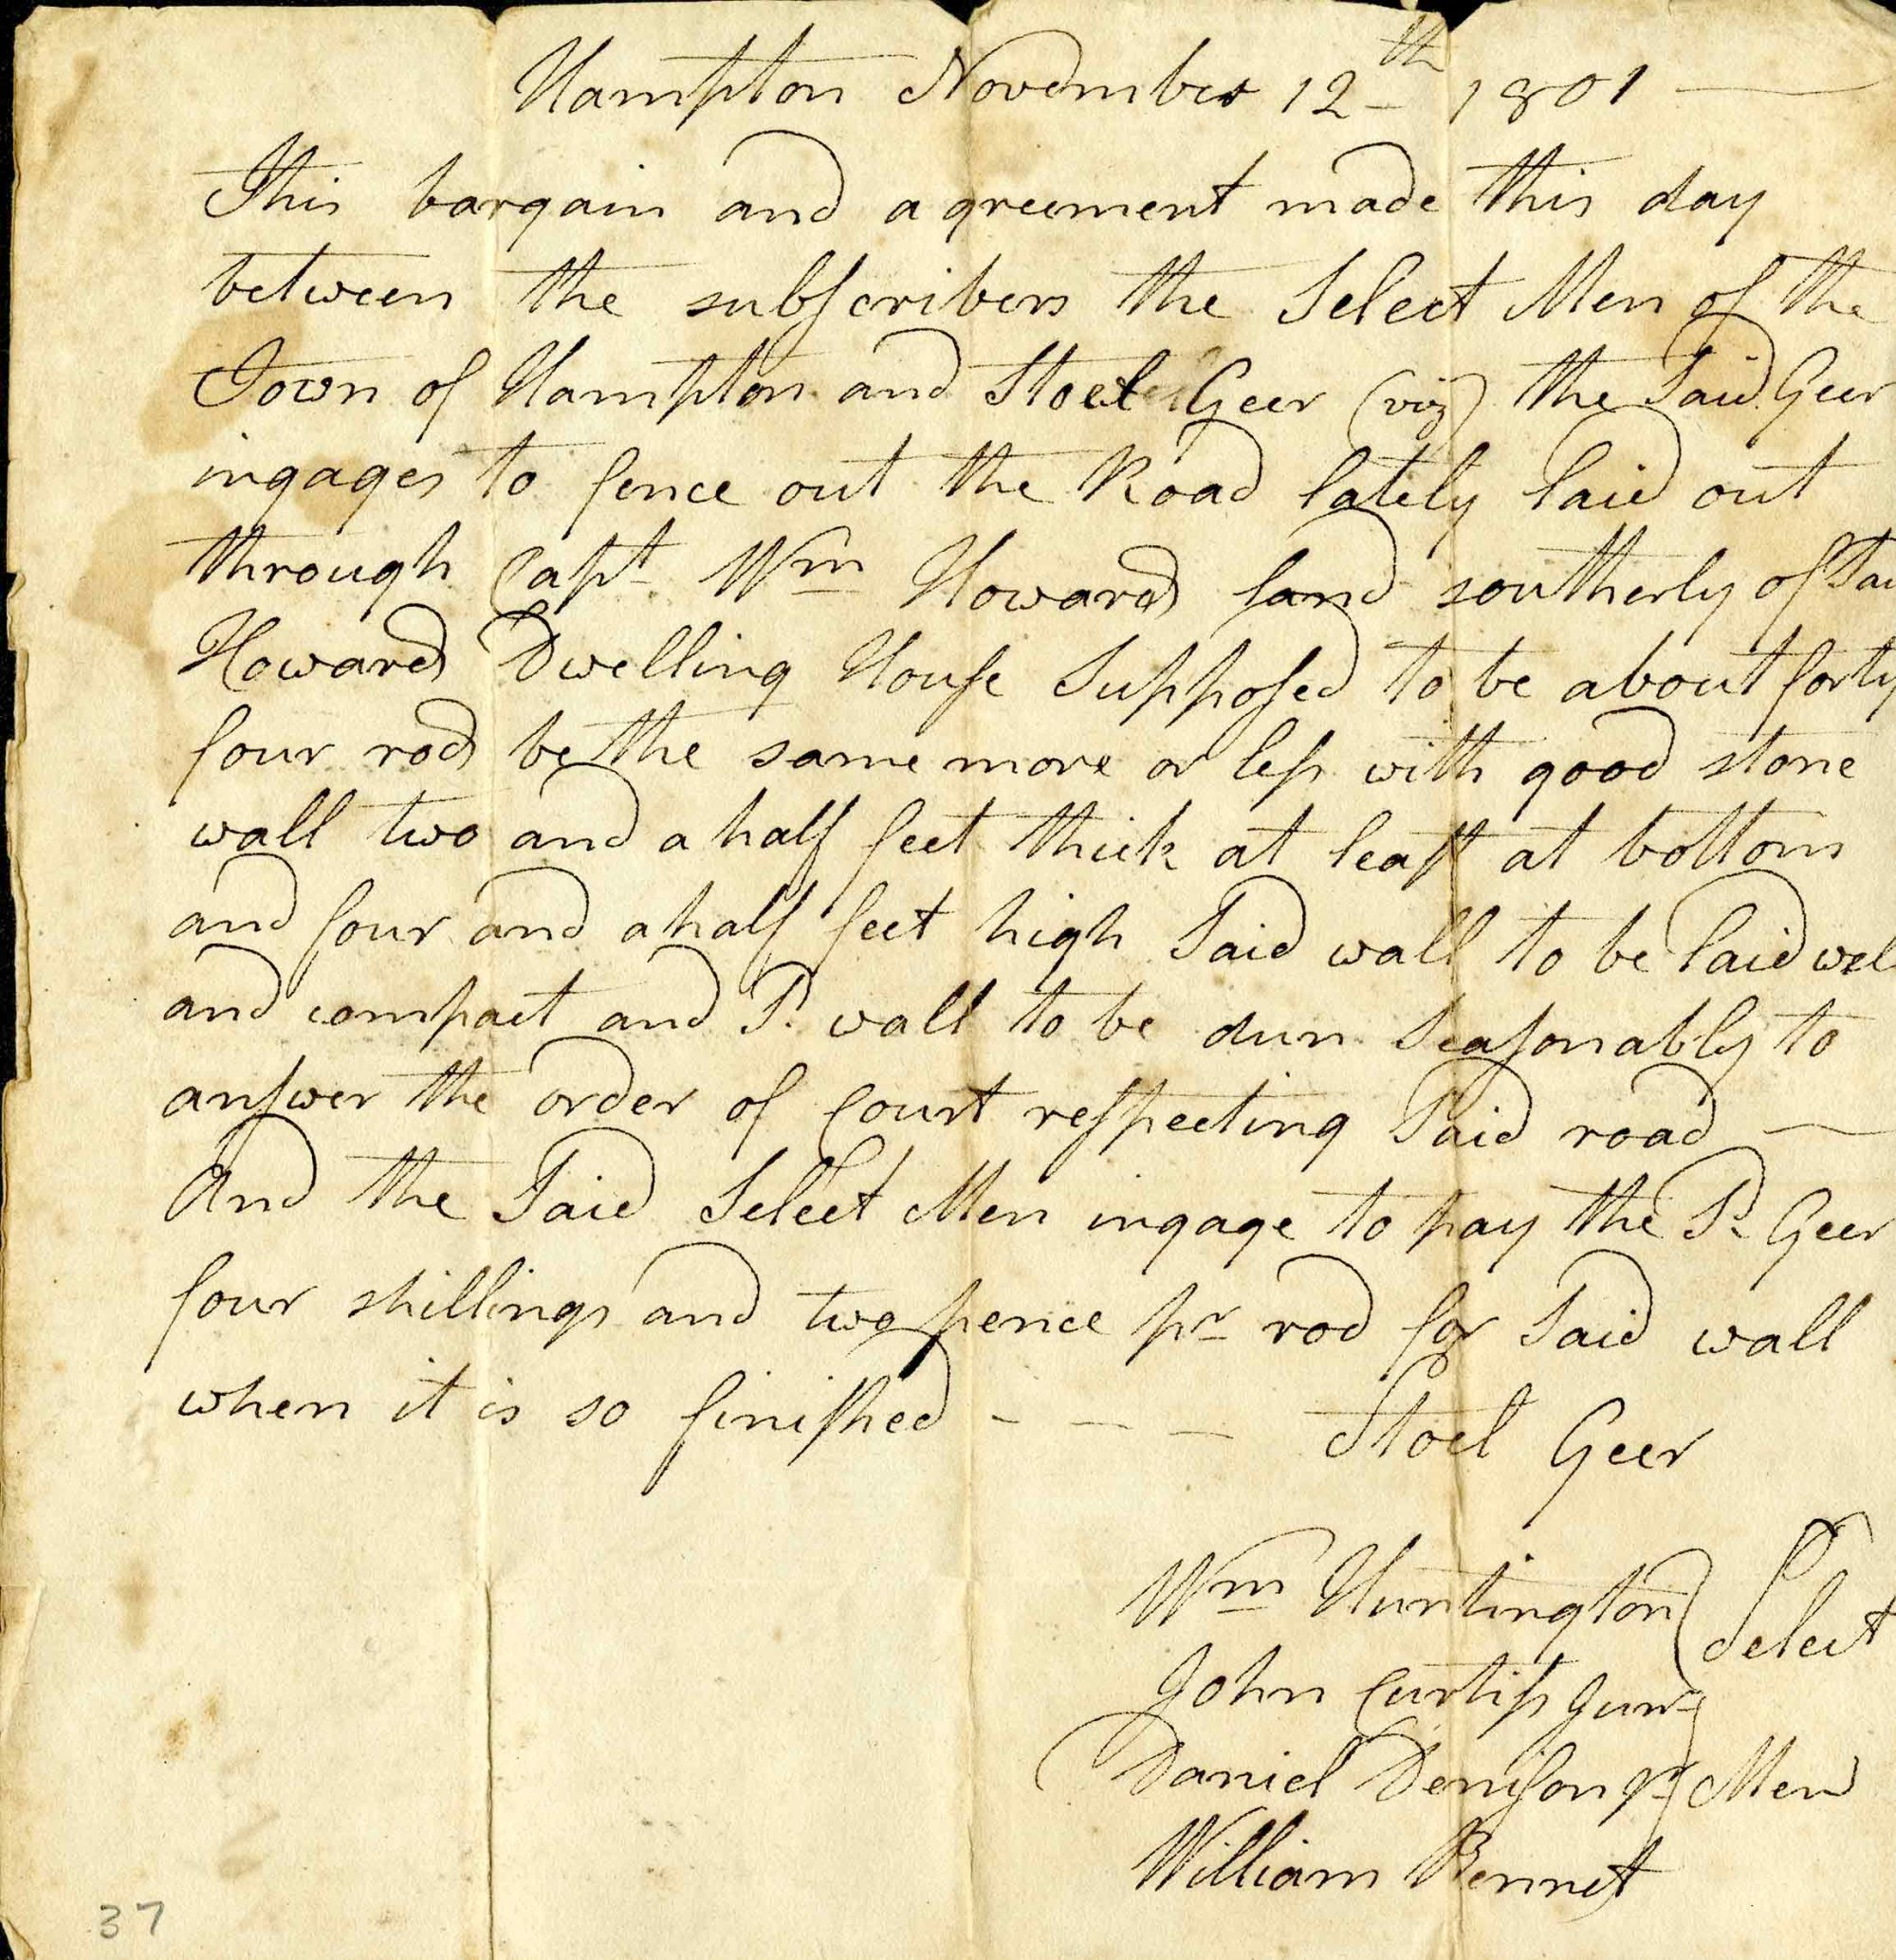 hight resolution of official letter from hampton connecticut from 1801 discussing the construction of a new road